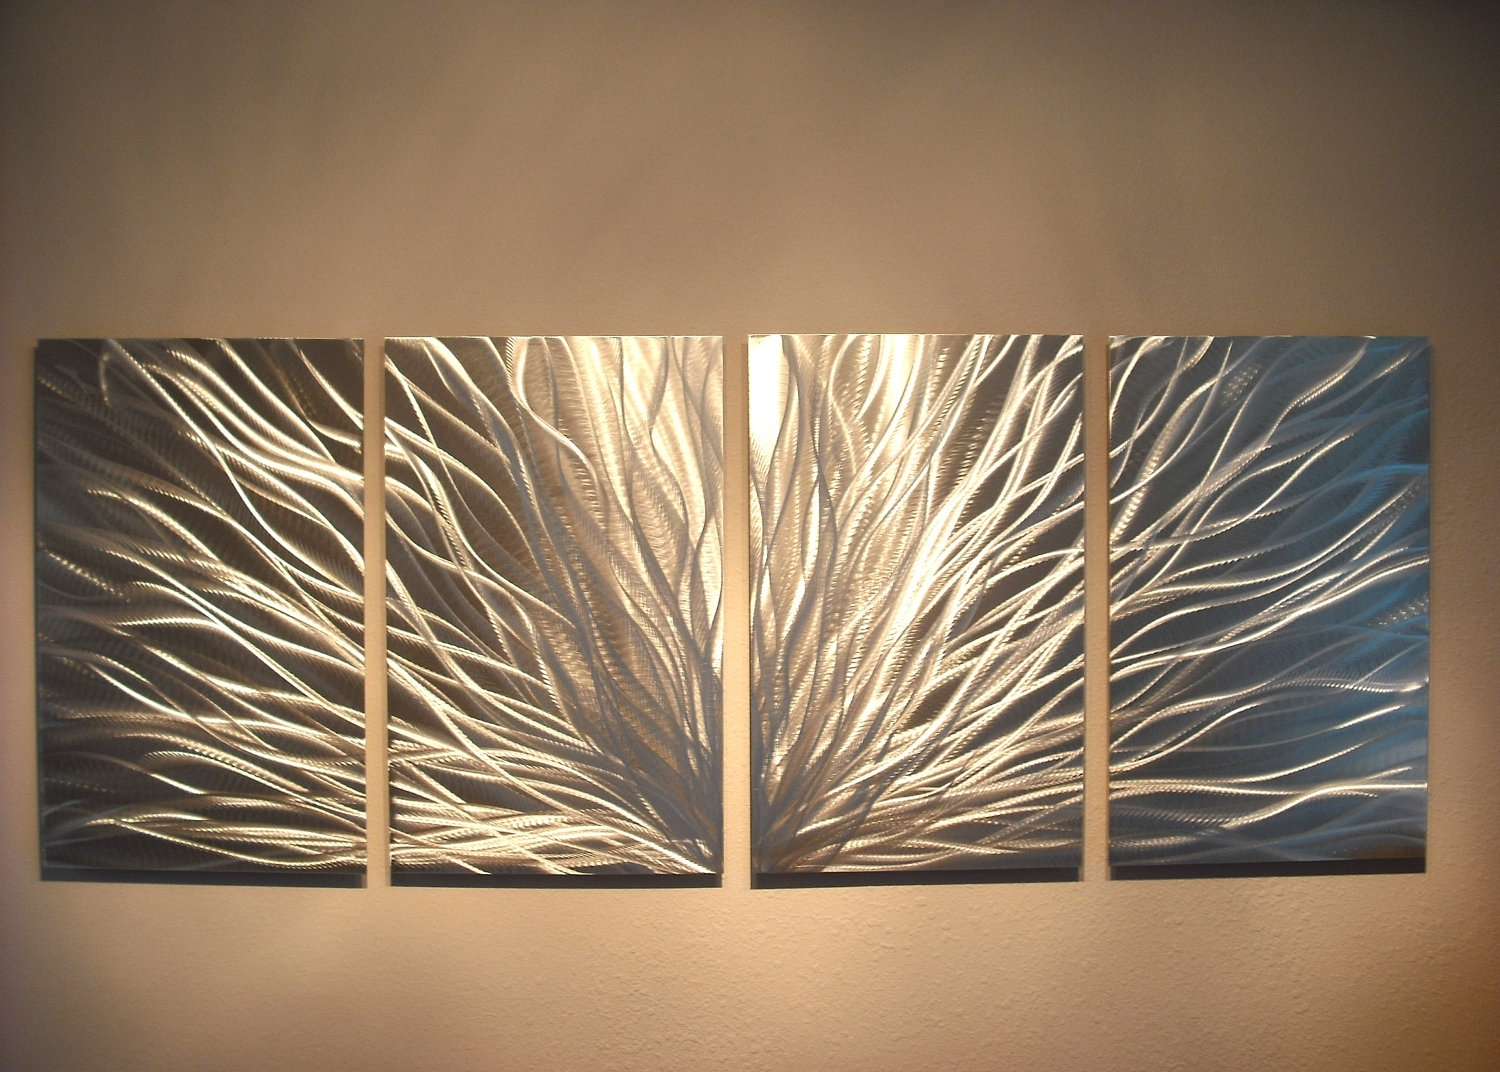 Radiance – Abstract Metal Wall Art Contemporary Modern Decor For Most Up To Date Light Abstract Wall Art (View 16 of 20)